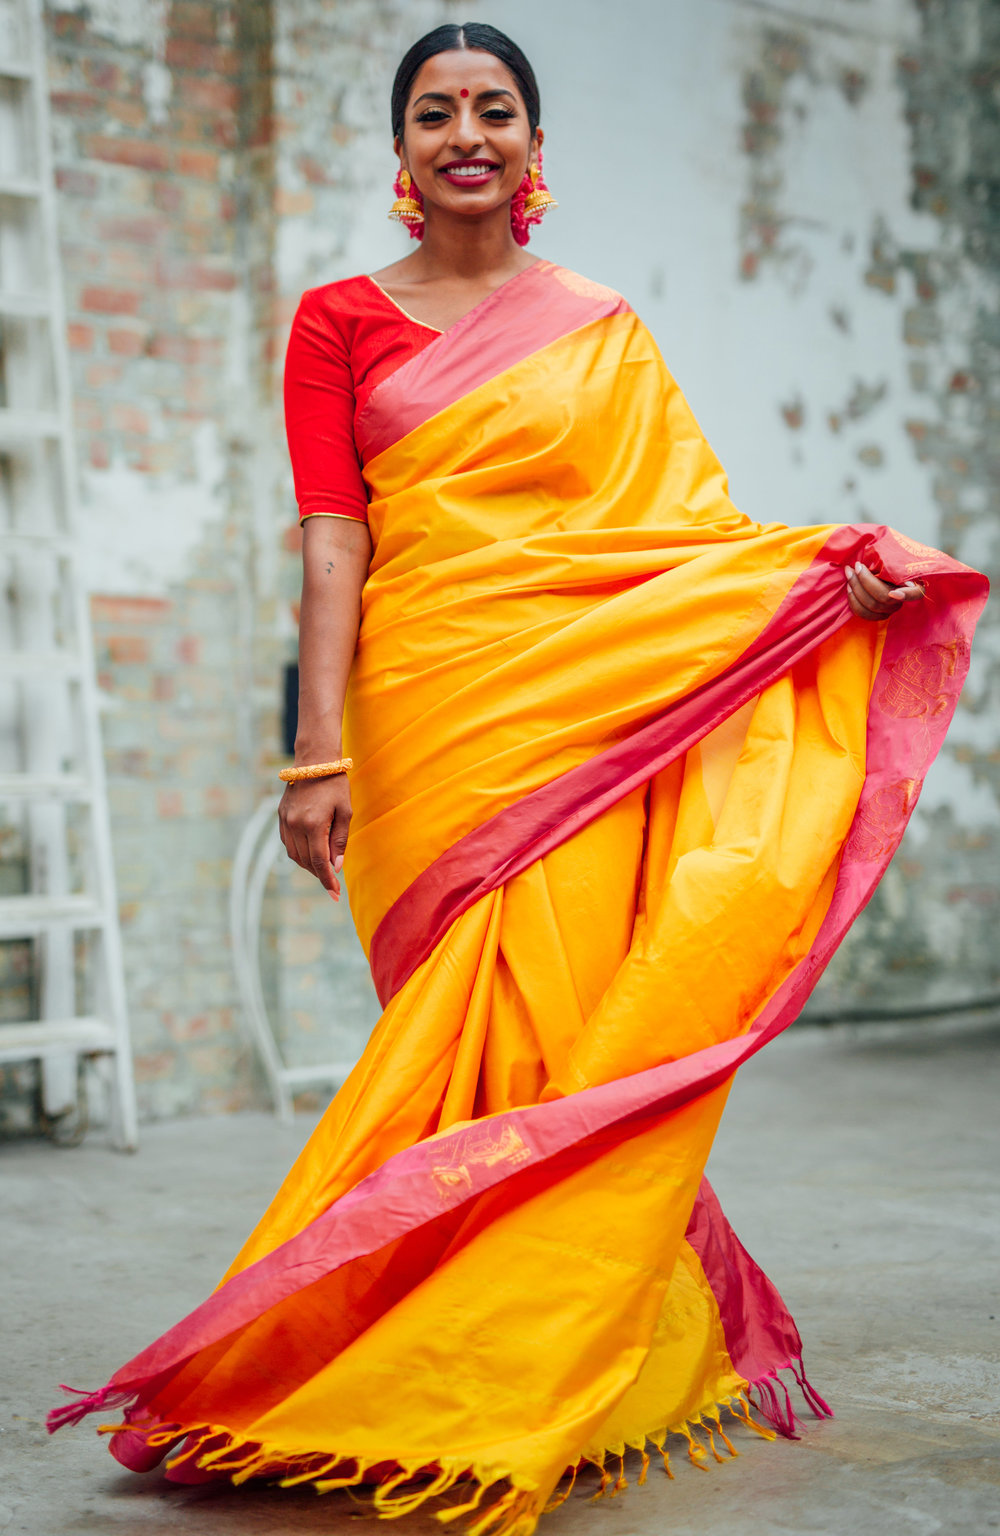 Jumani Yellow Saree Pothys-227.jpg